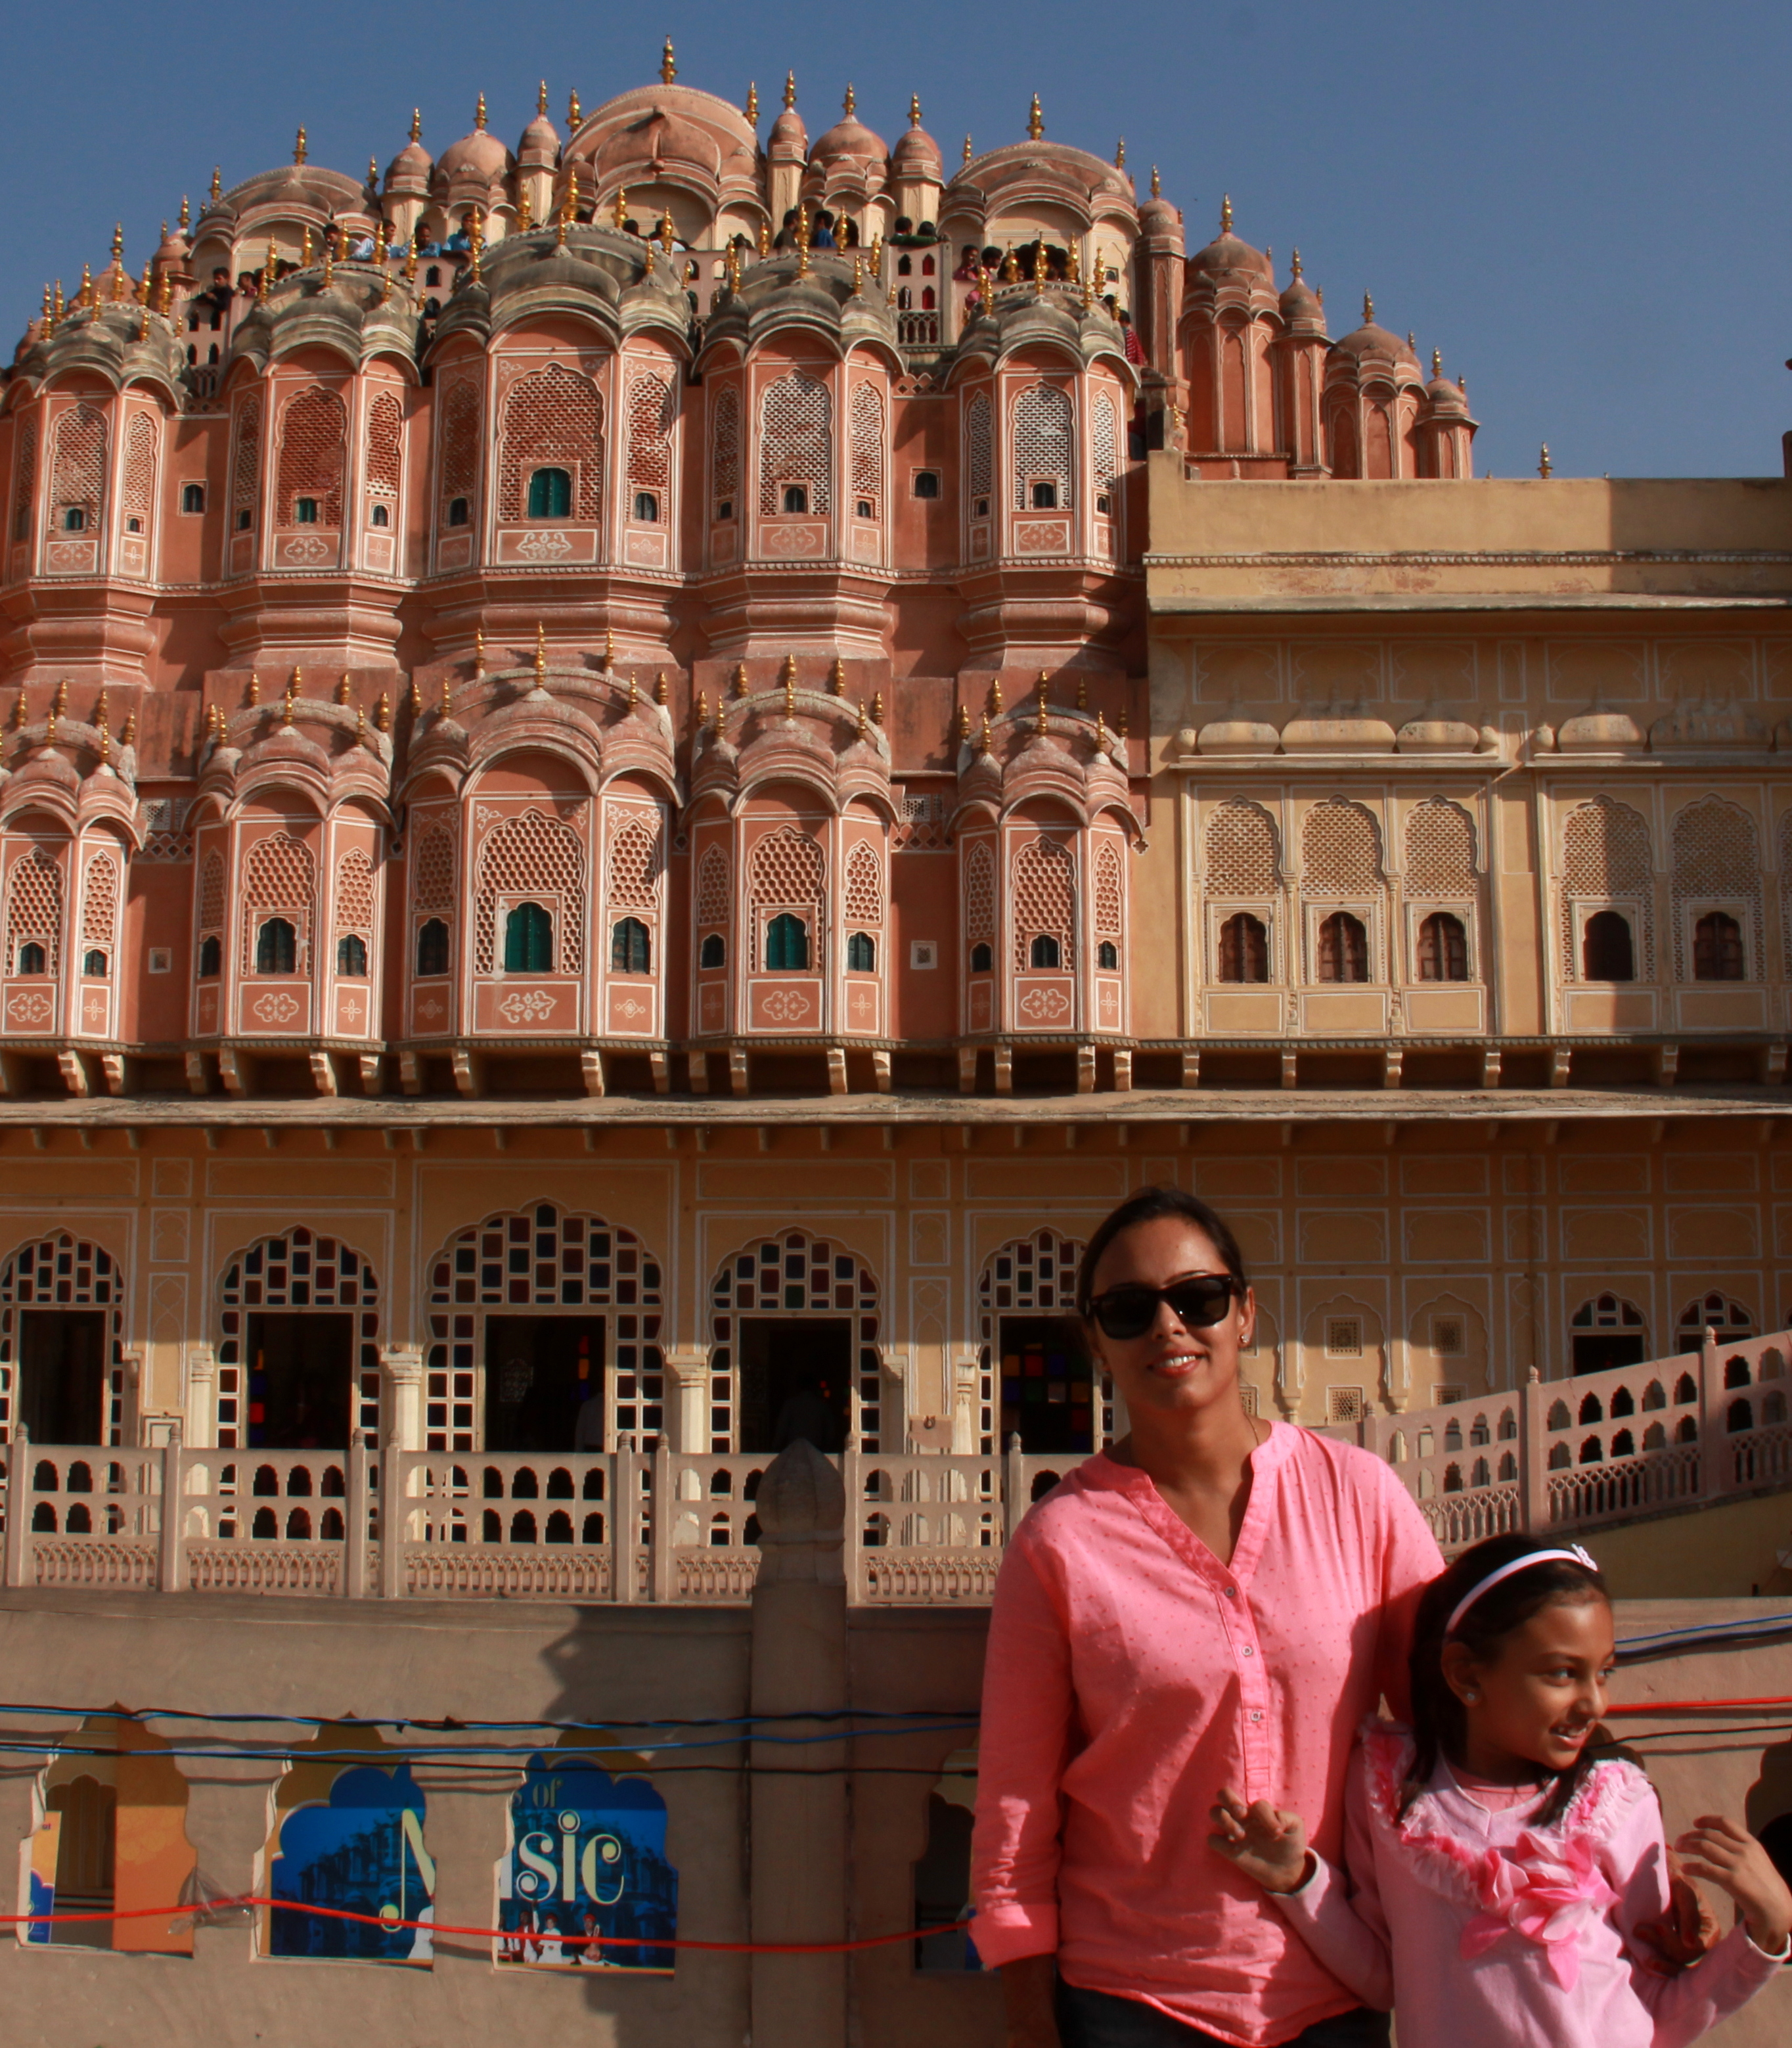 Hawa mahal is not to be missed when in jaipur with kids